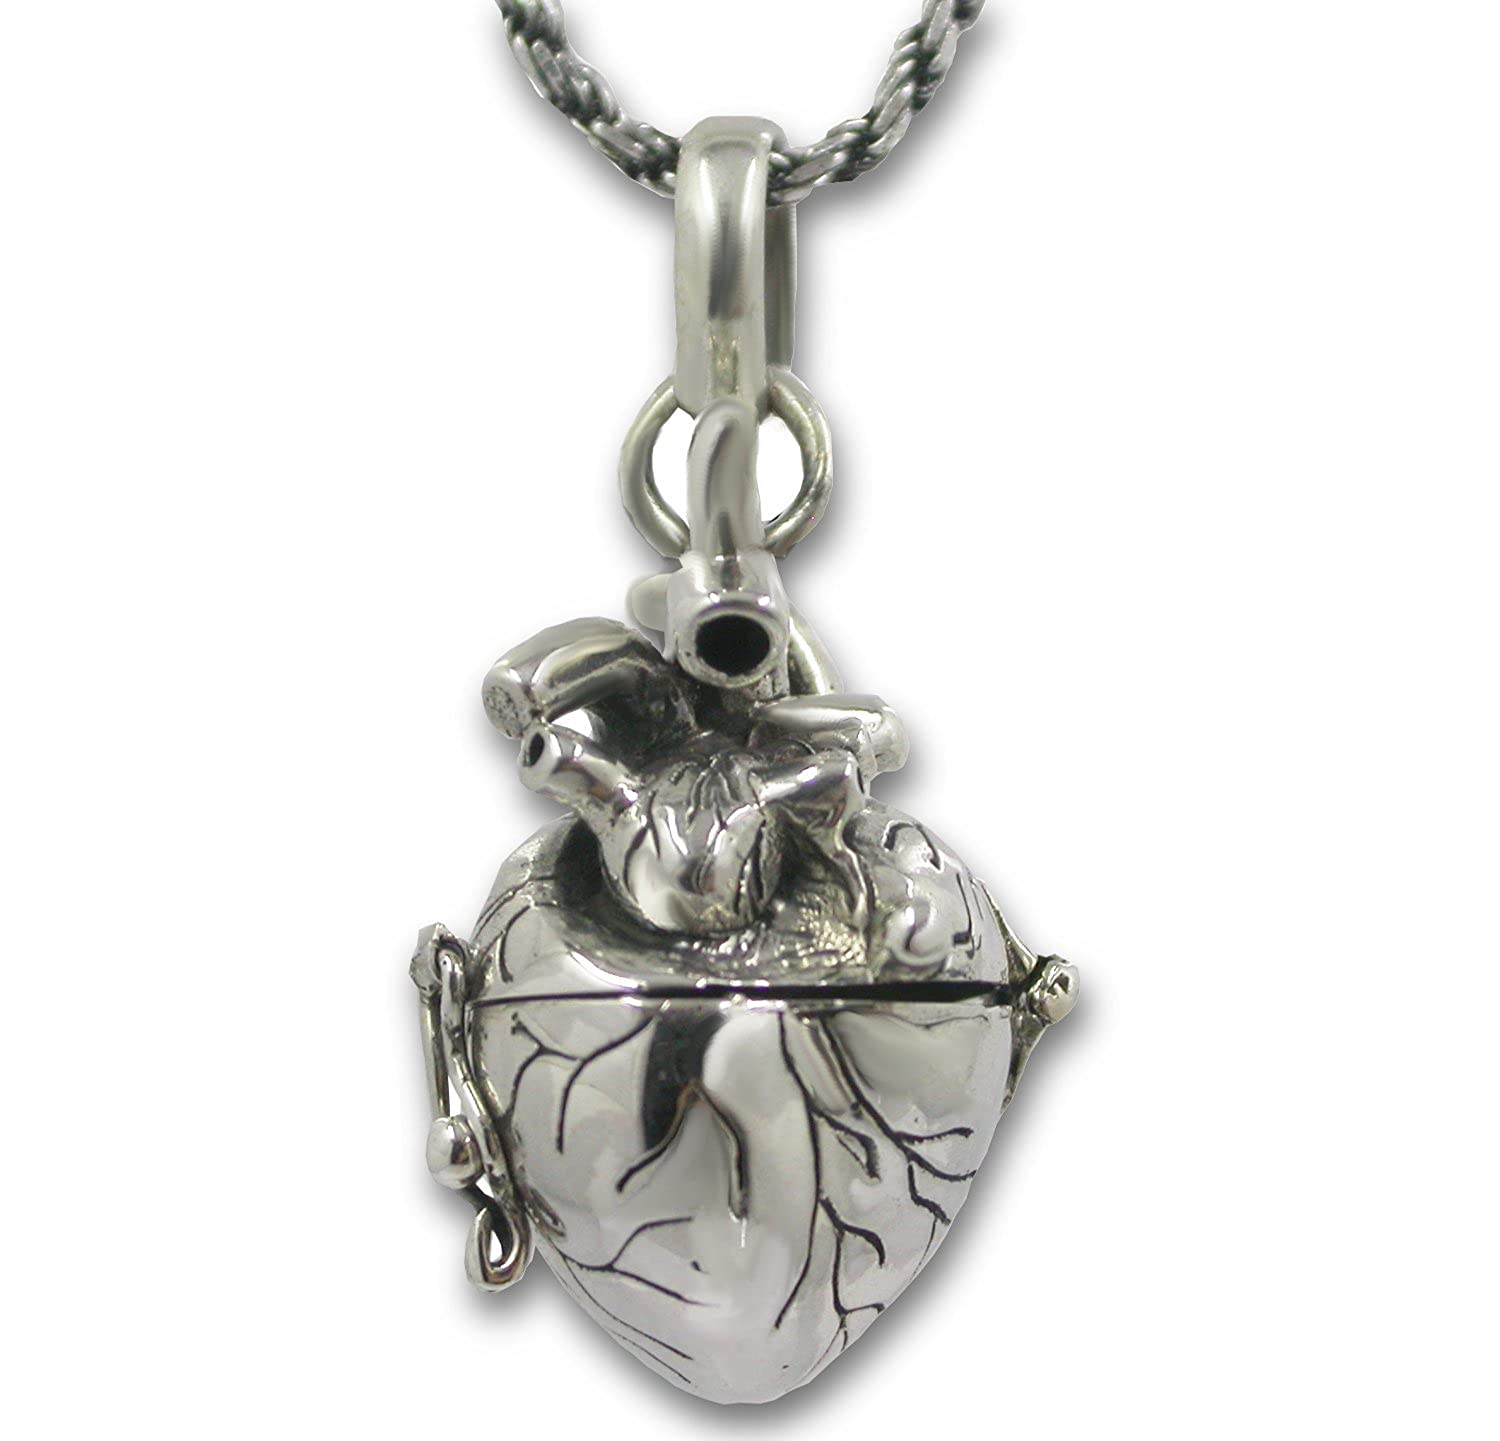 Steampunk Human Heart 3d Anatomical Human Heart